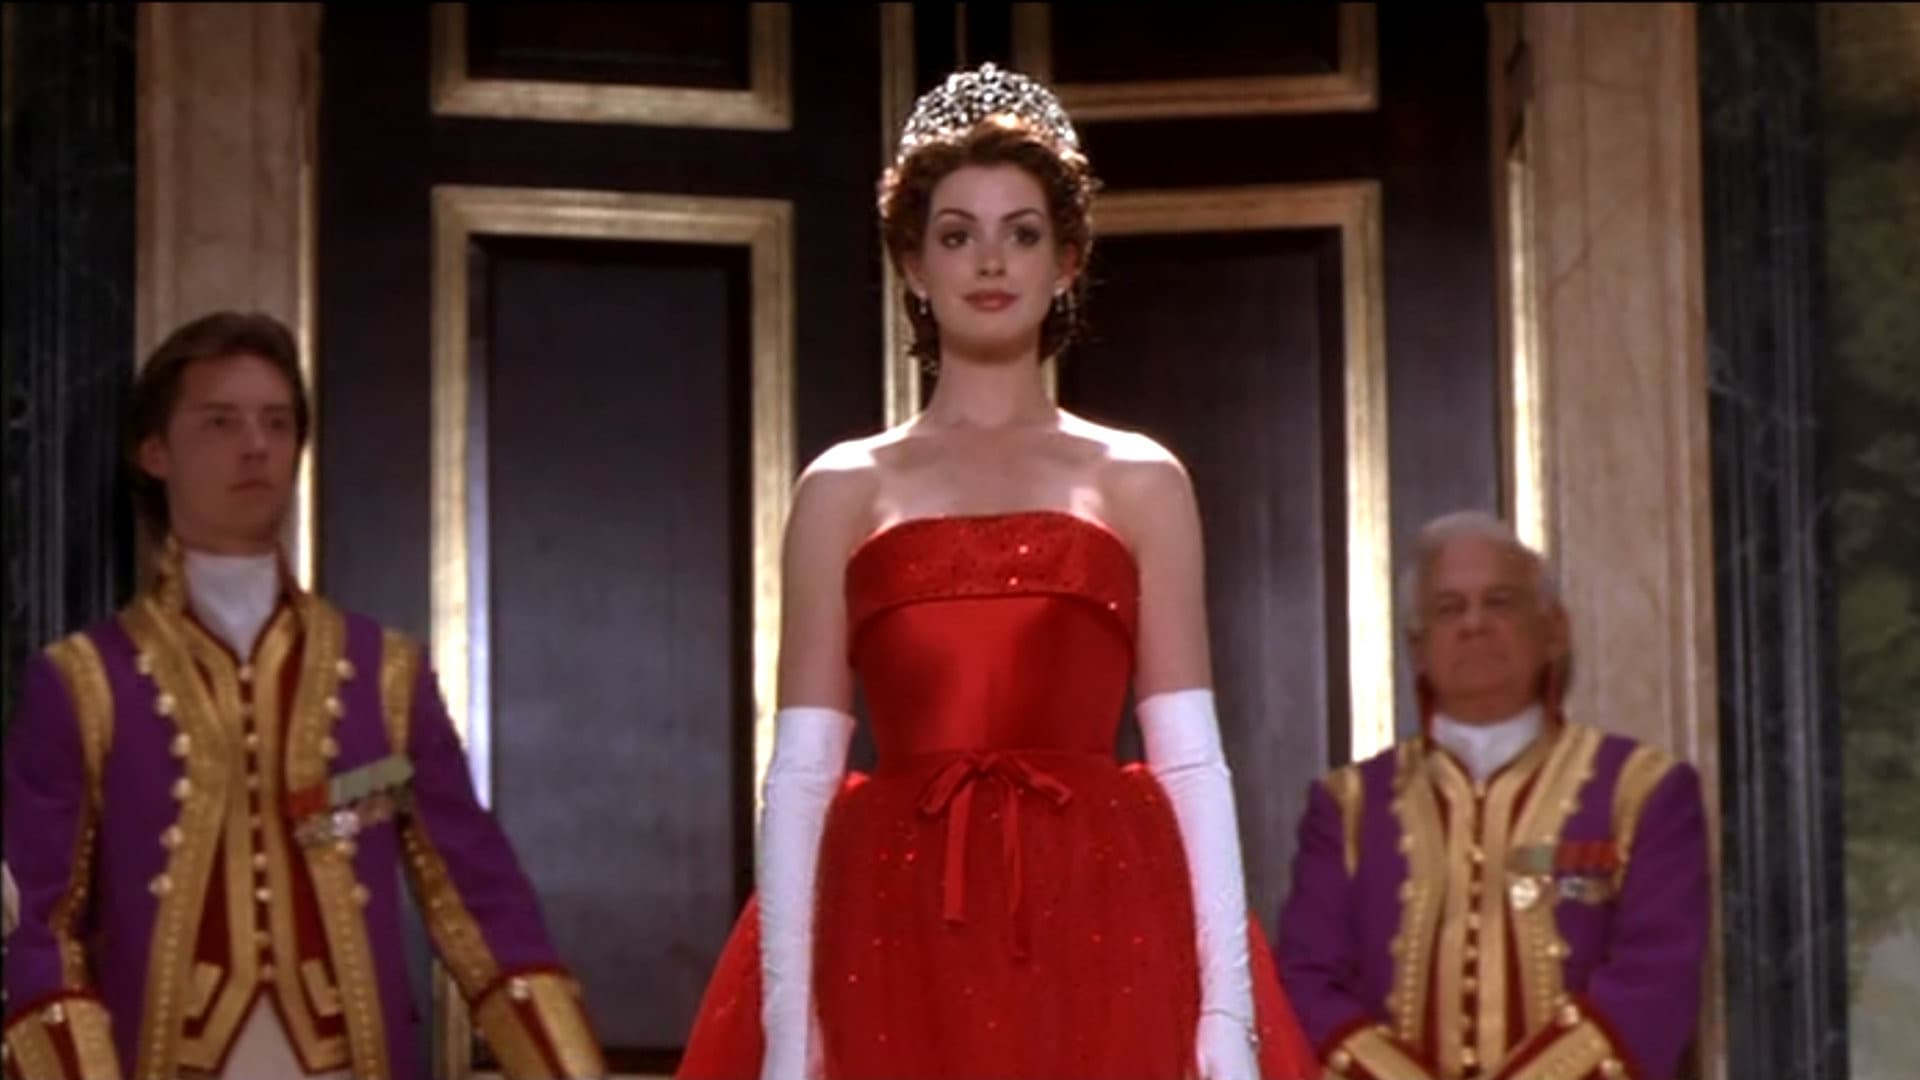 Watch The Princess Diaries 2: Royal Engagement (2004) full movie ...